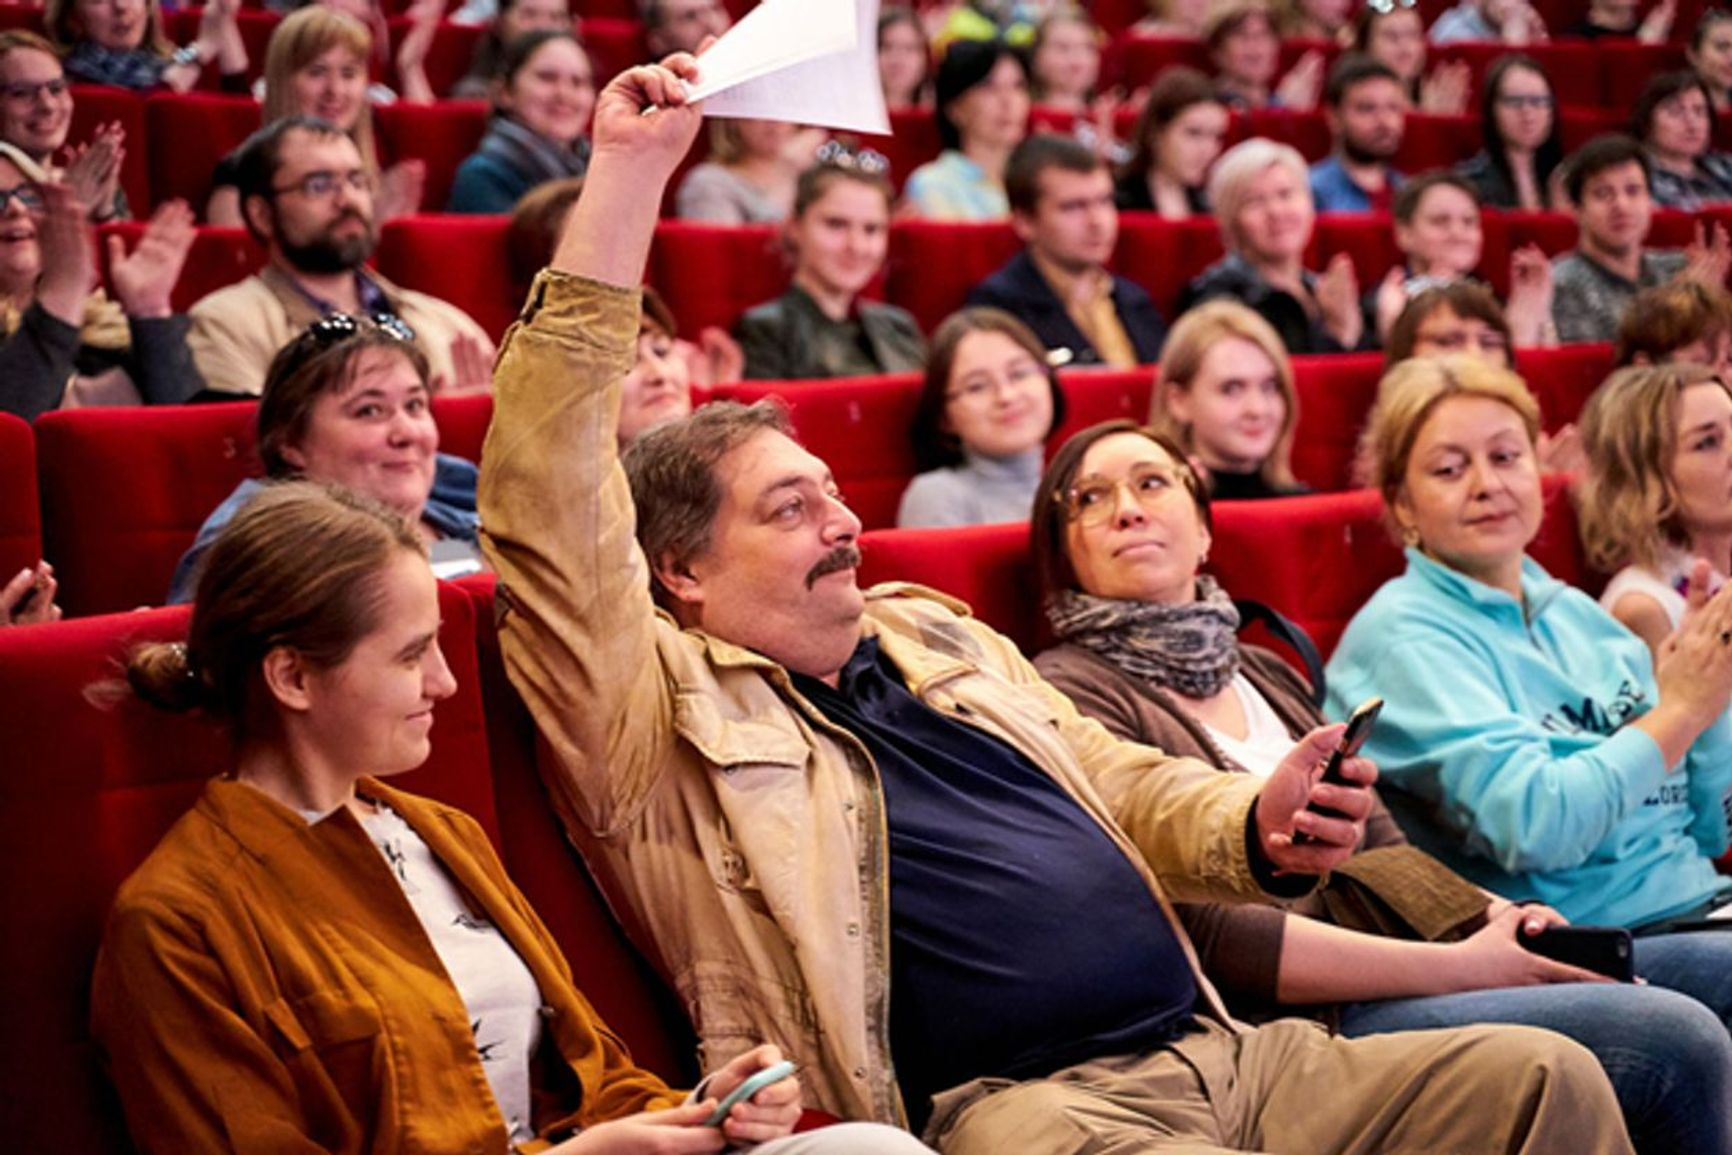 From left to right: Ekaterina Kevkhishvili and Dmitry Bykov in the Pobeda auditorium on that very day